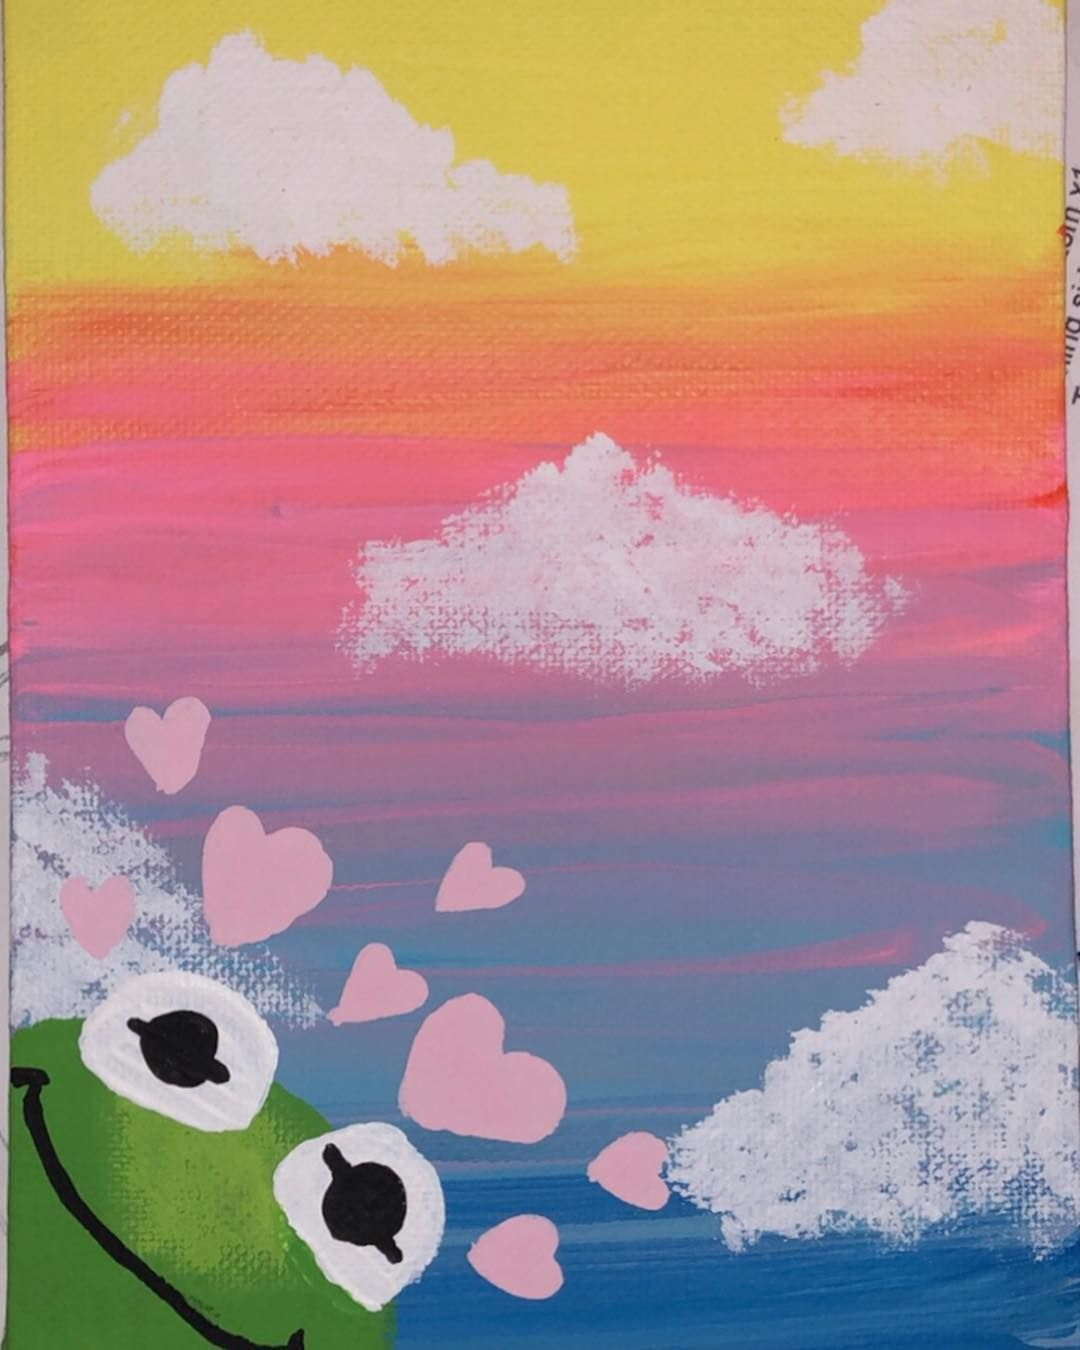 Aesthetic Sunset With Clouds Painting Tik Tok